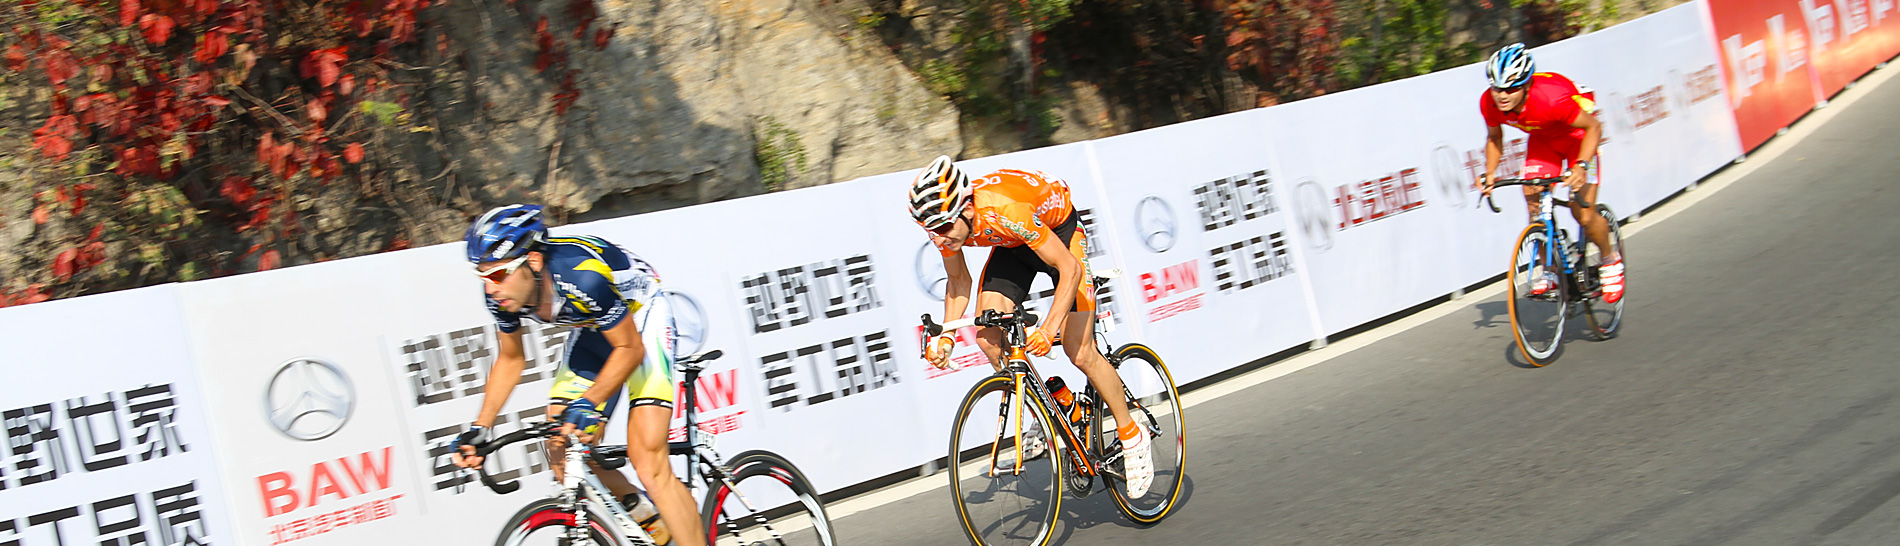 Tour of Beijing Top Banner